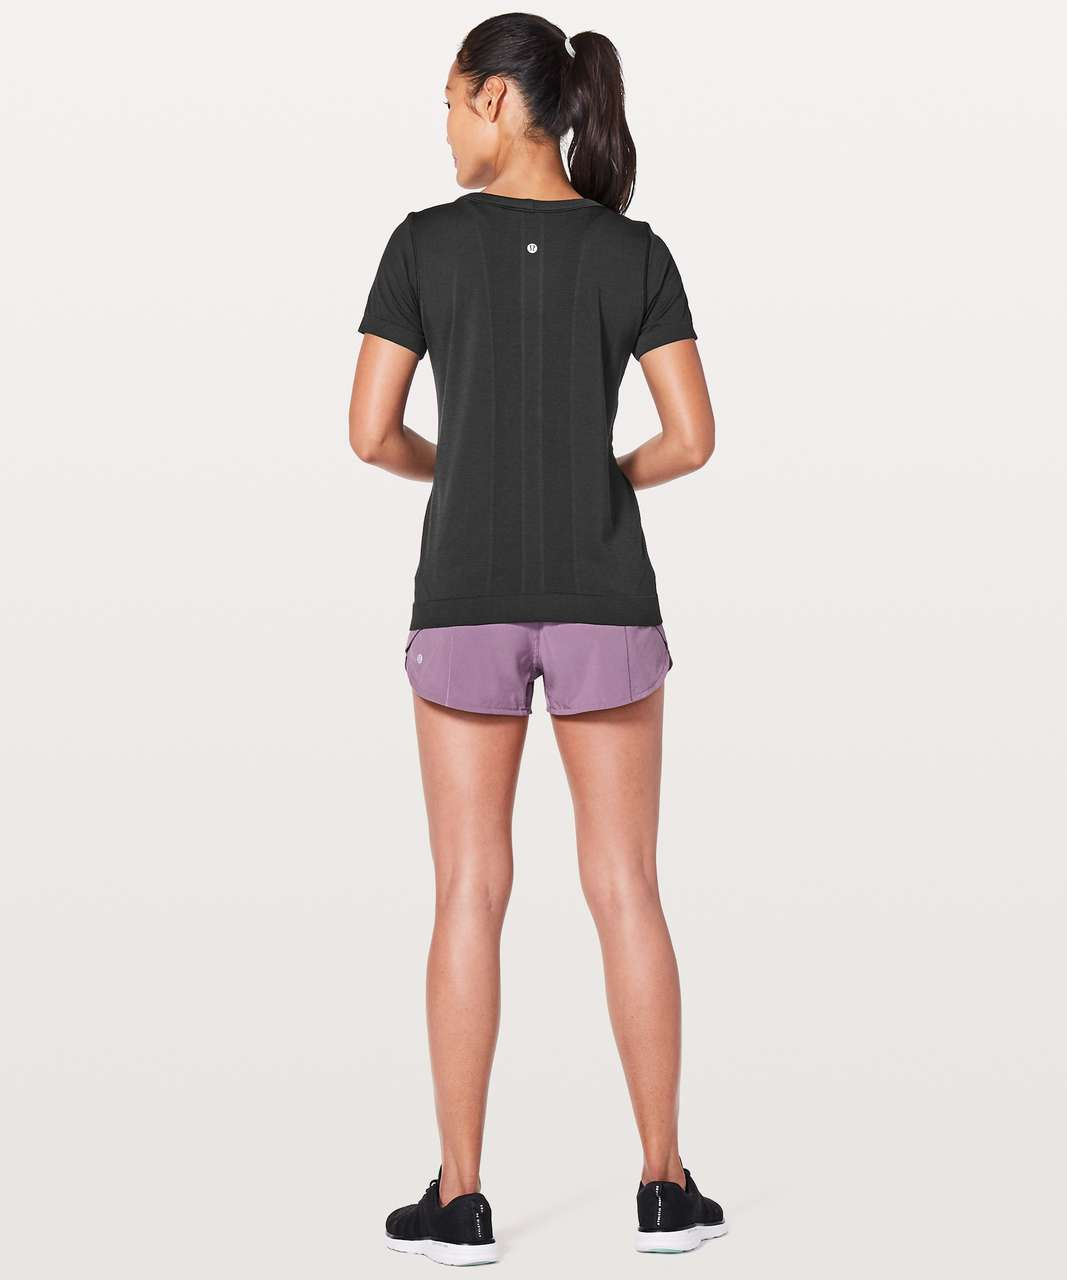 Lululemon Swiftly Tech Short Sleeve (Breeze) *Relaxed Fit - Black / Black (First Release)